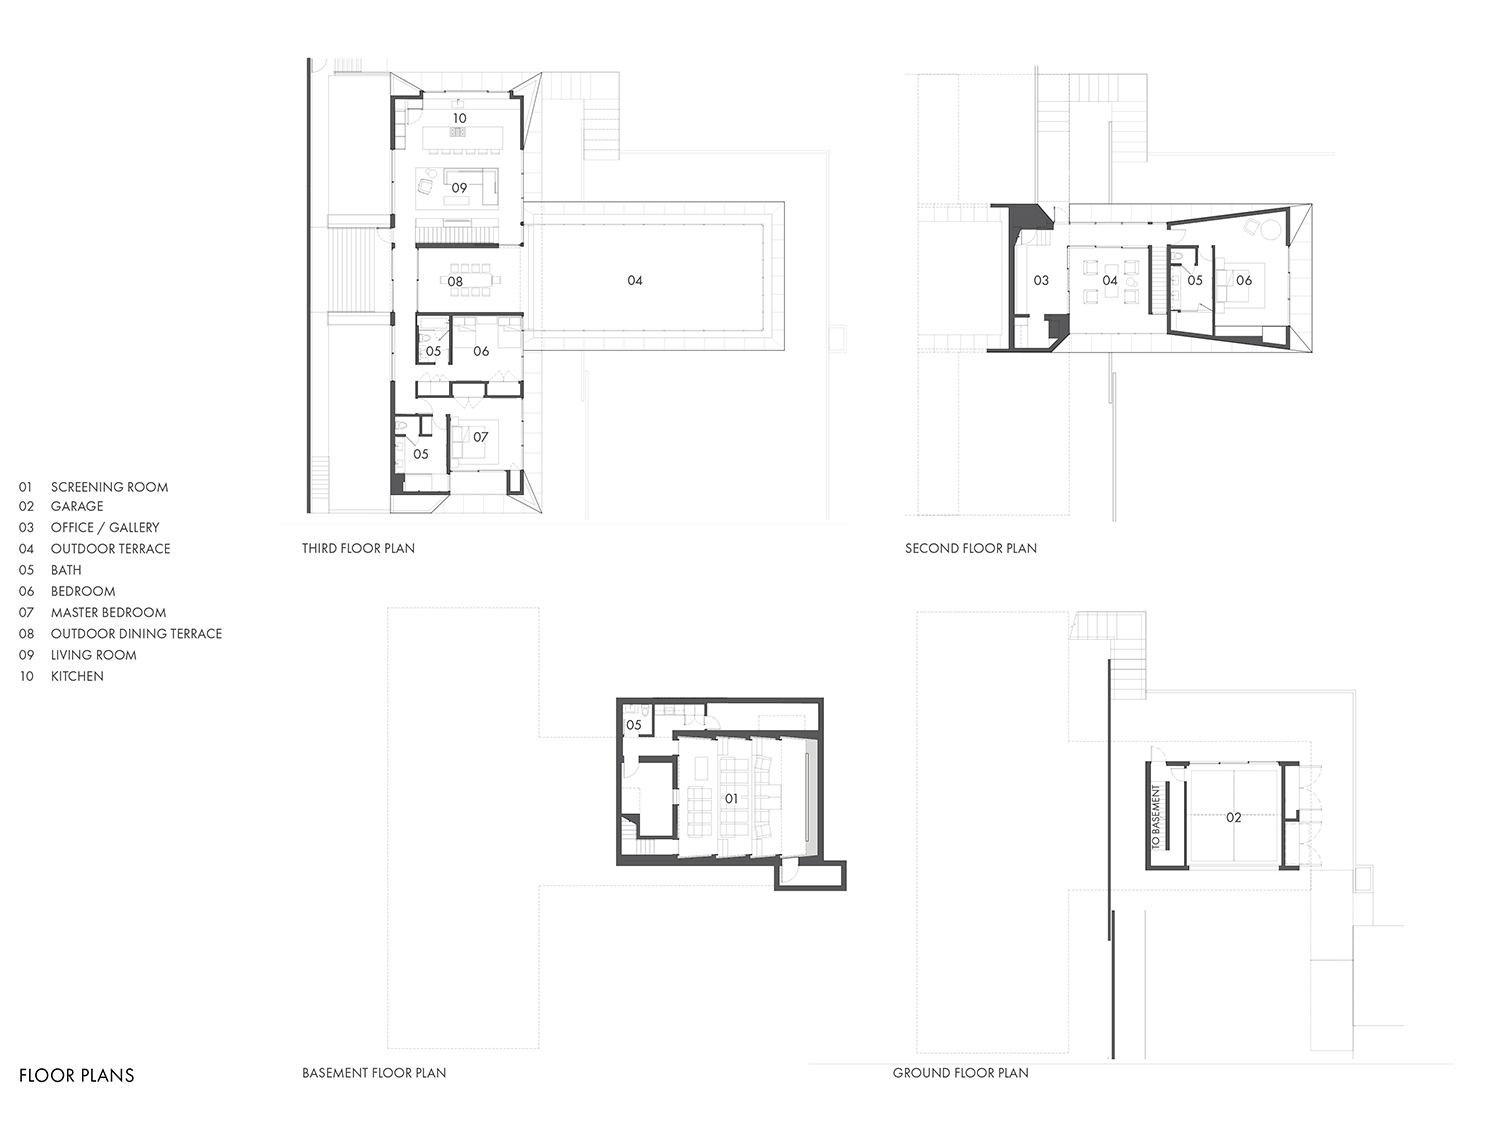 Floor plans of the residence Montalba Architects}